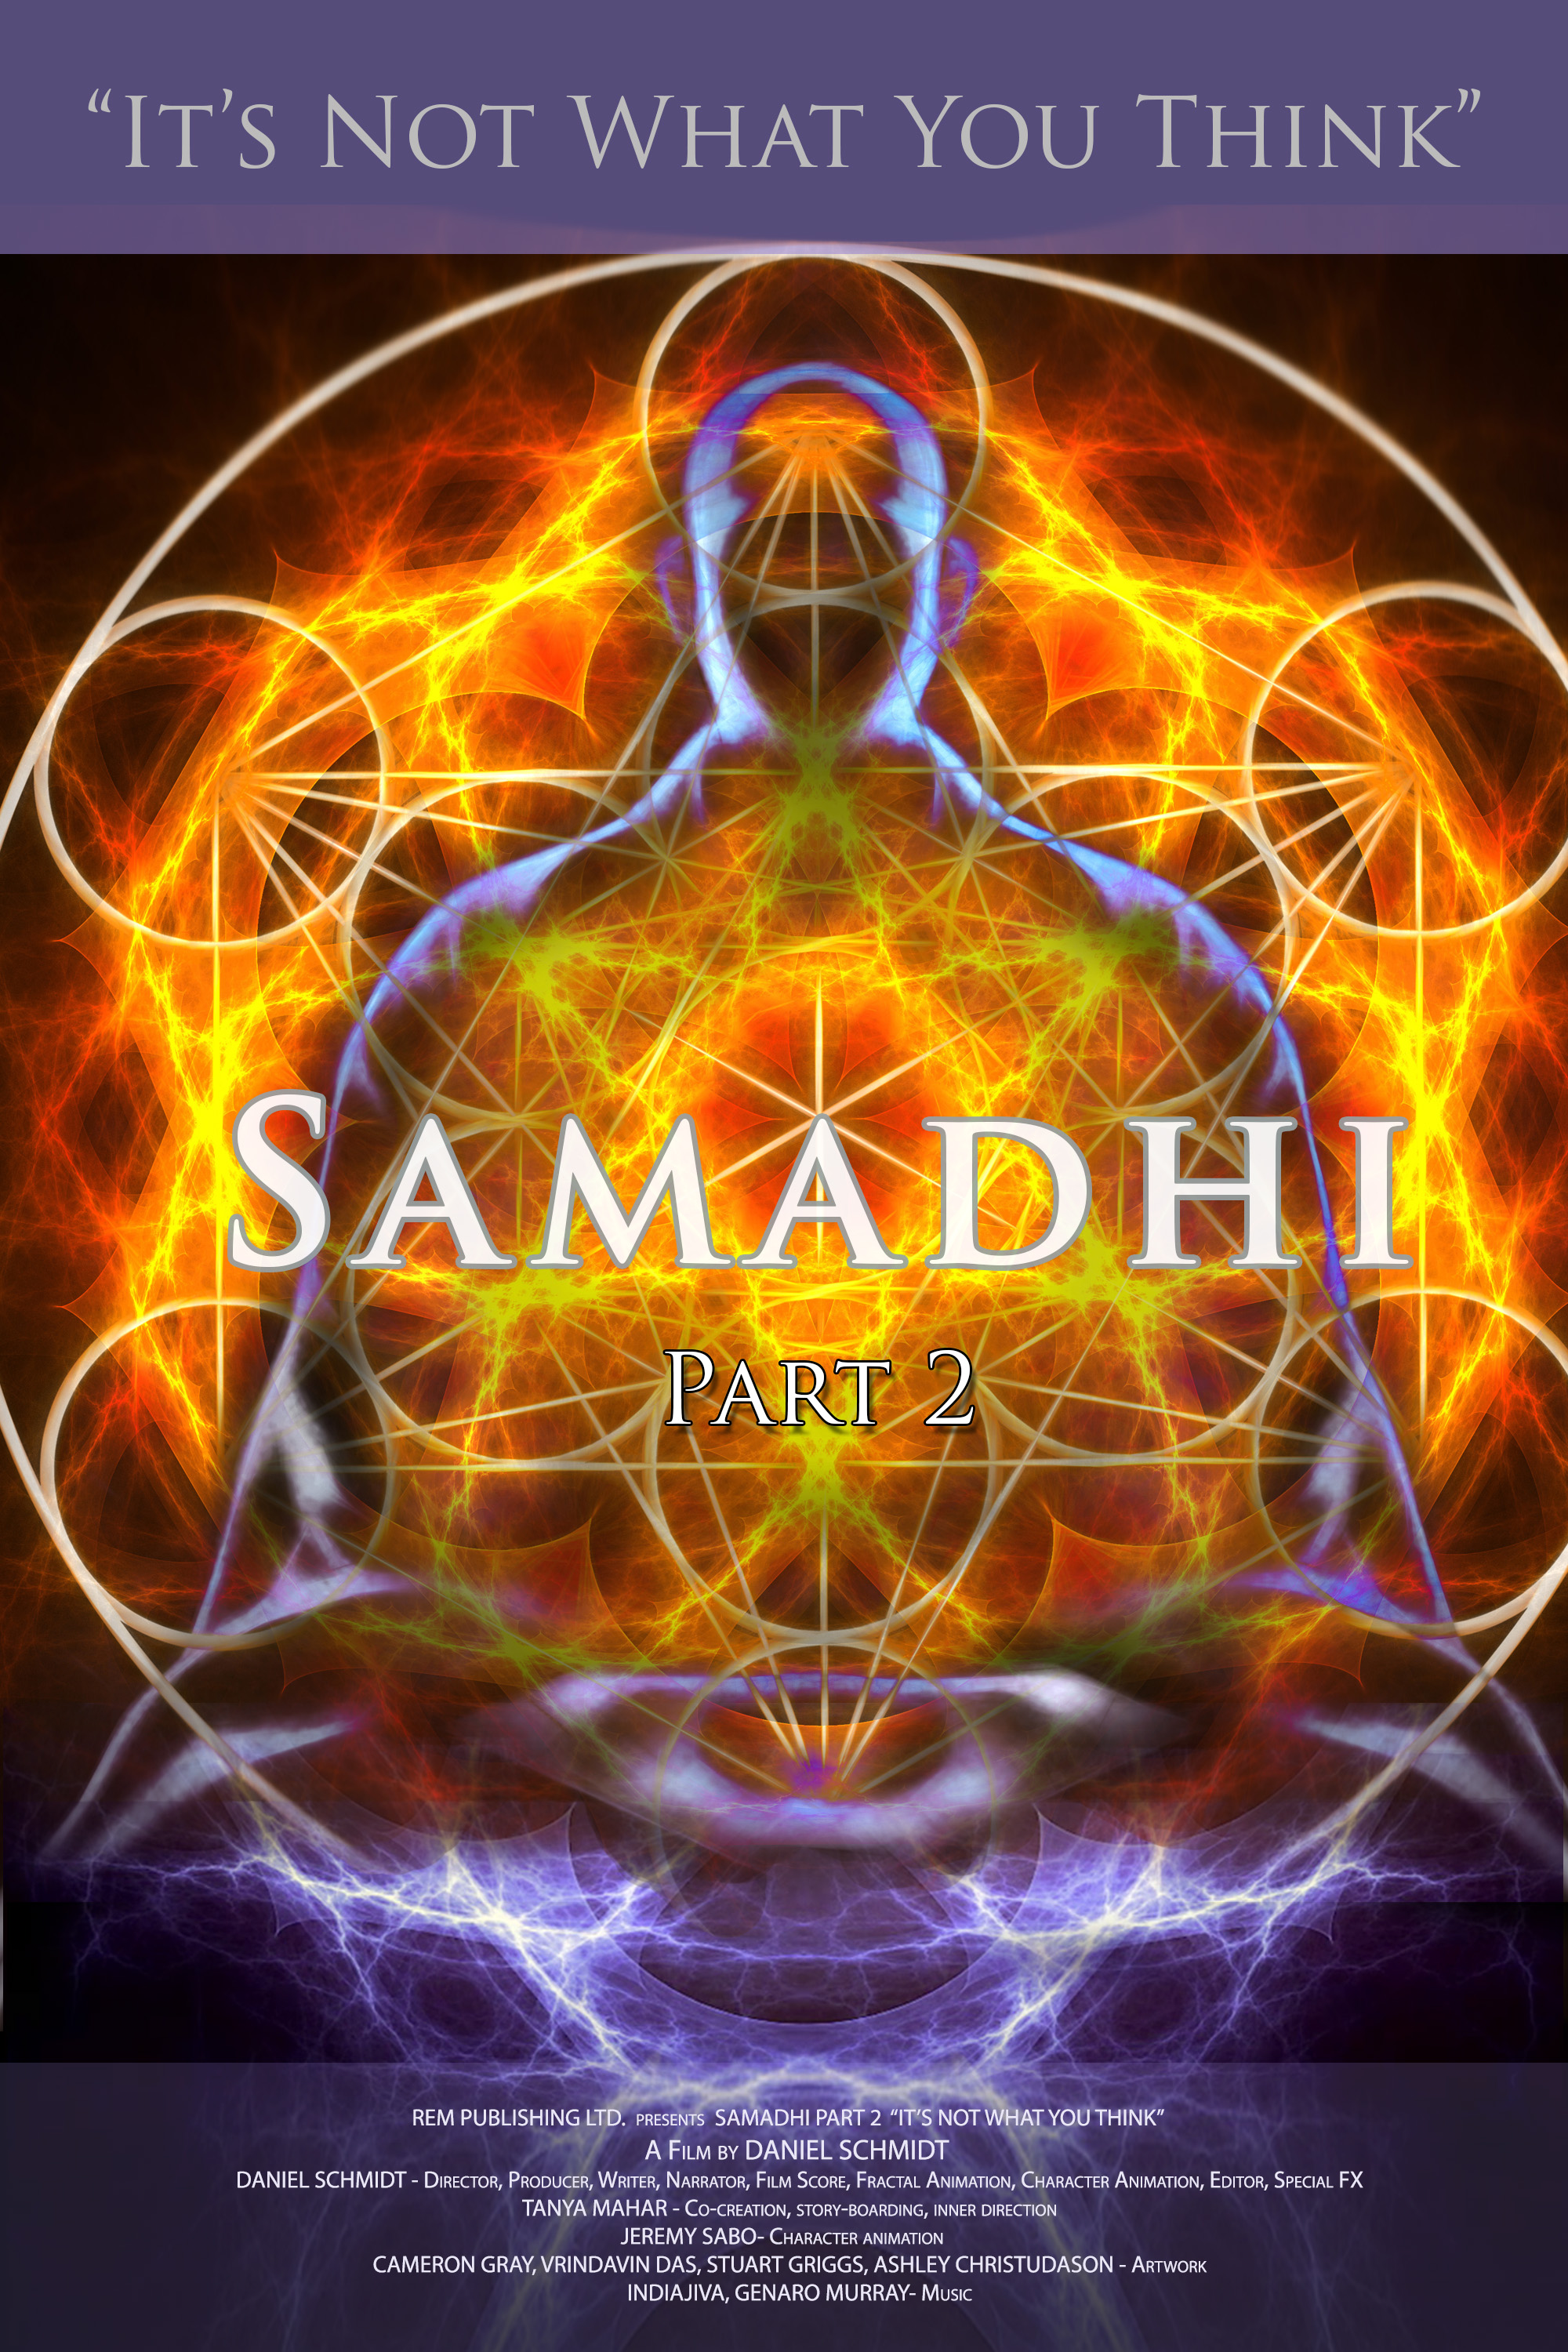 Samadhi: Part 2 (It's Not What You Think) (2018)